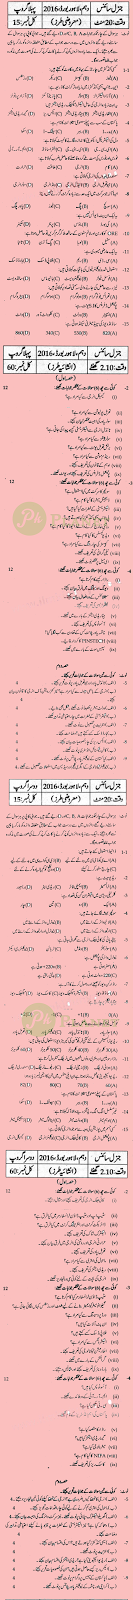 Past Papers 10th Class Lahore Board General Science 2015